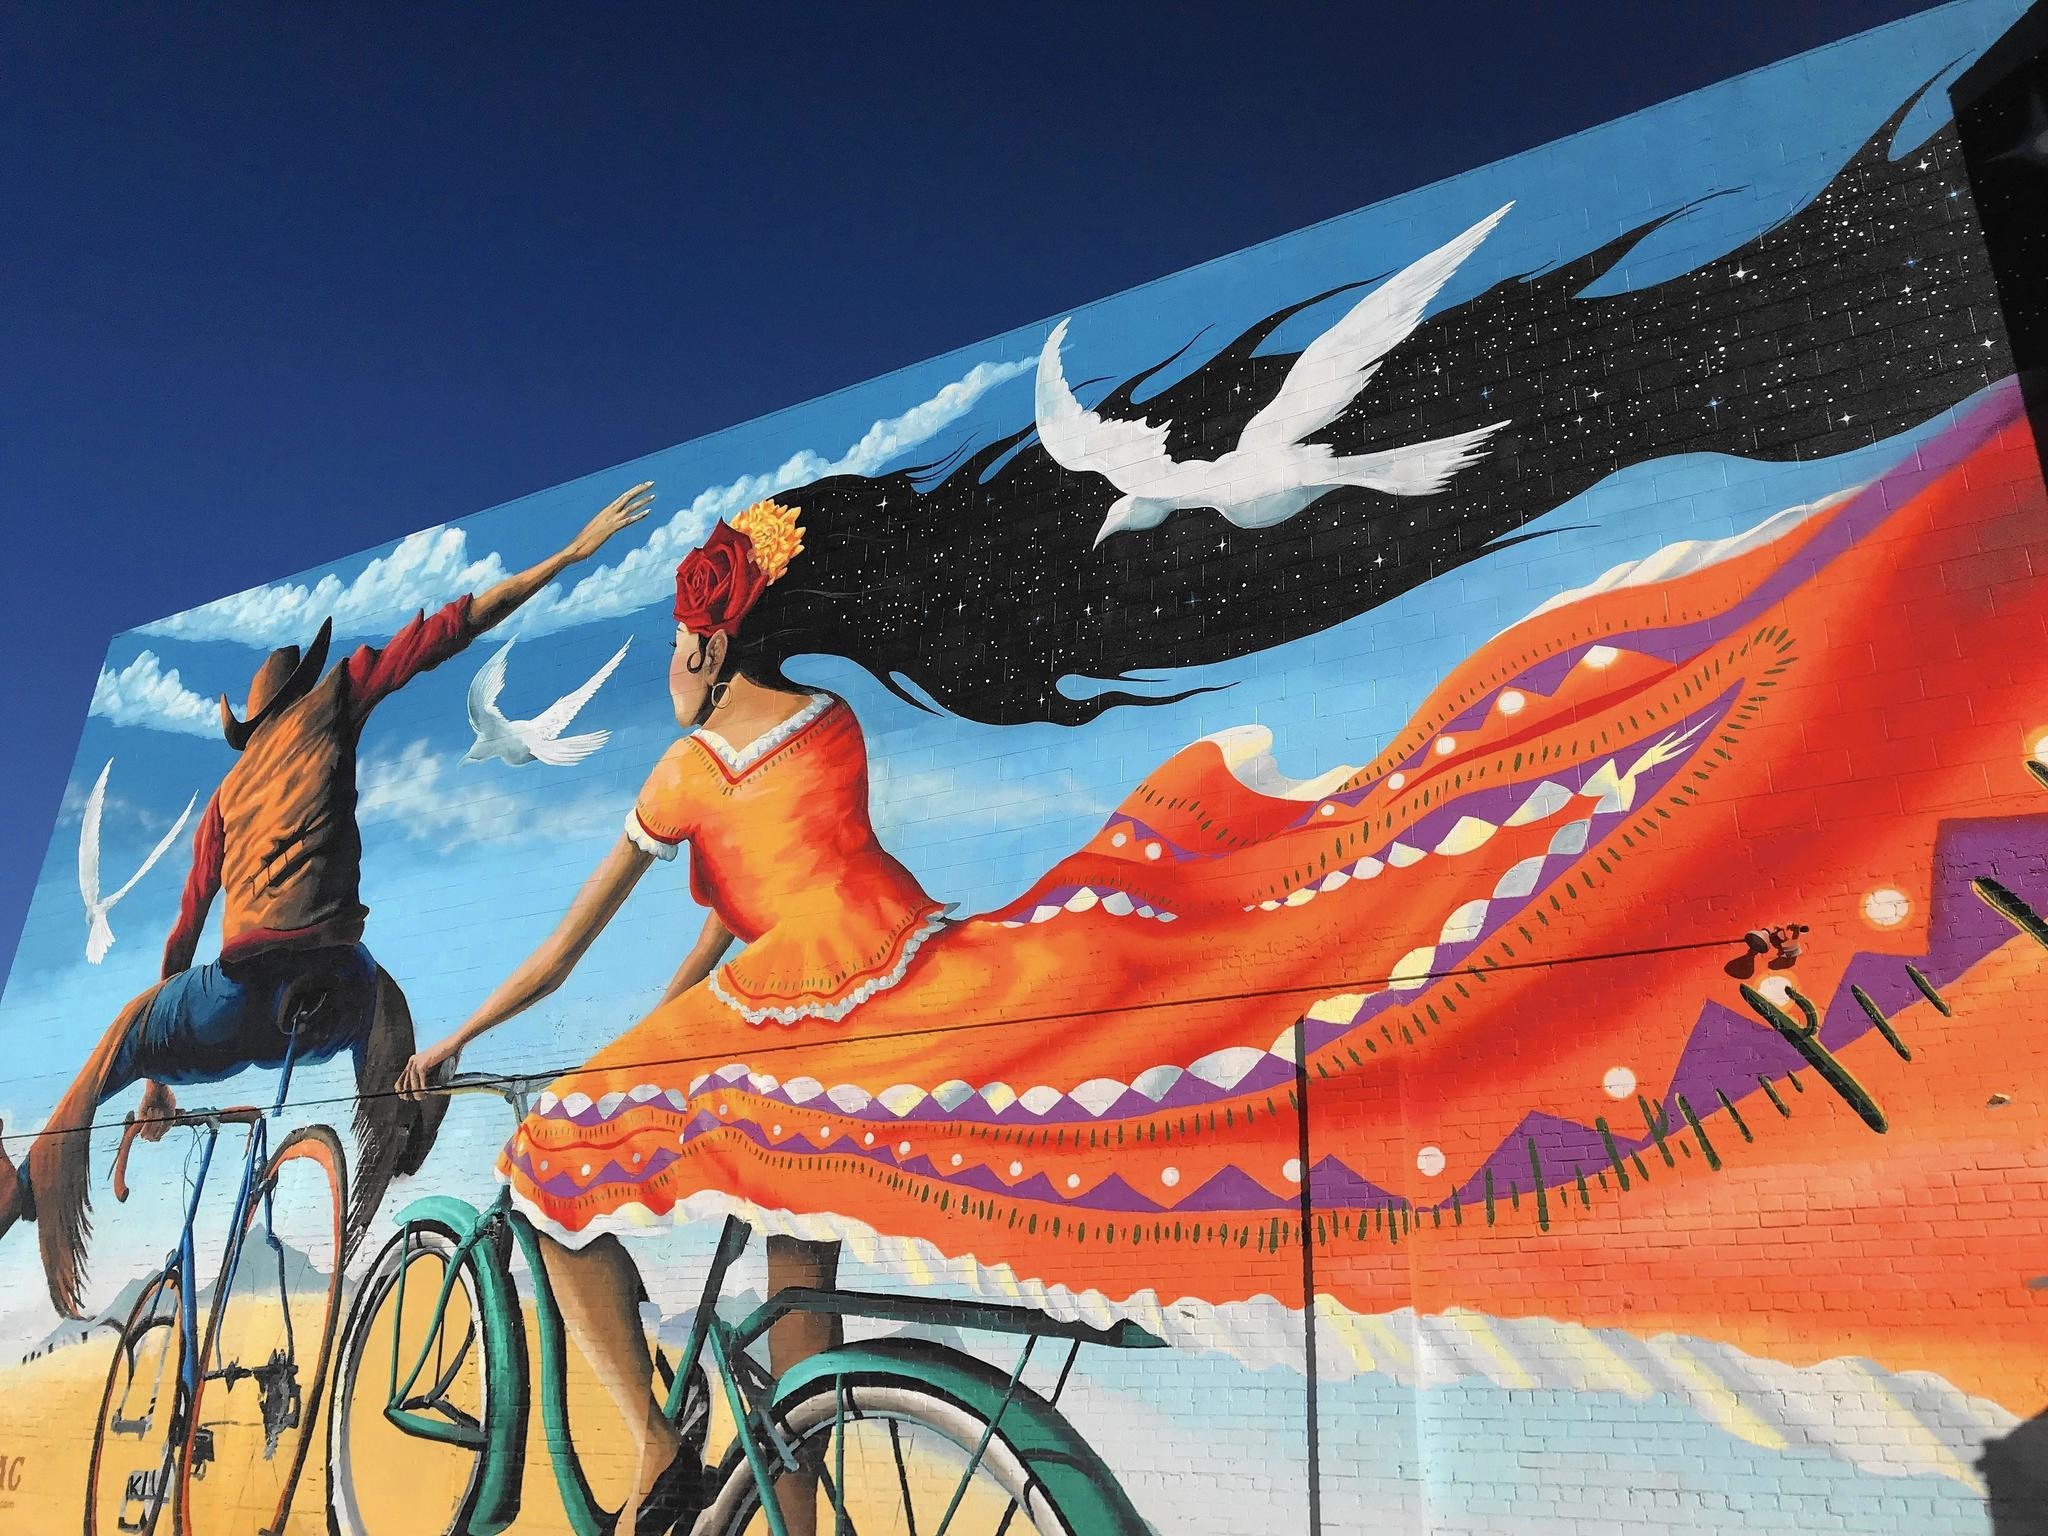 Tucson on two wheels: Arizona city an oasis for cyclists of all speeds